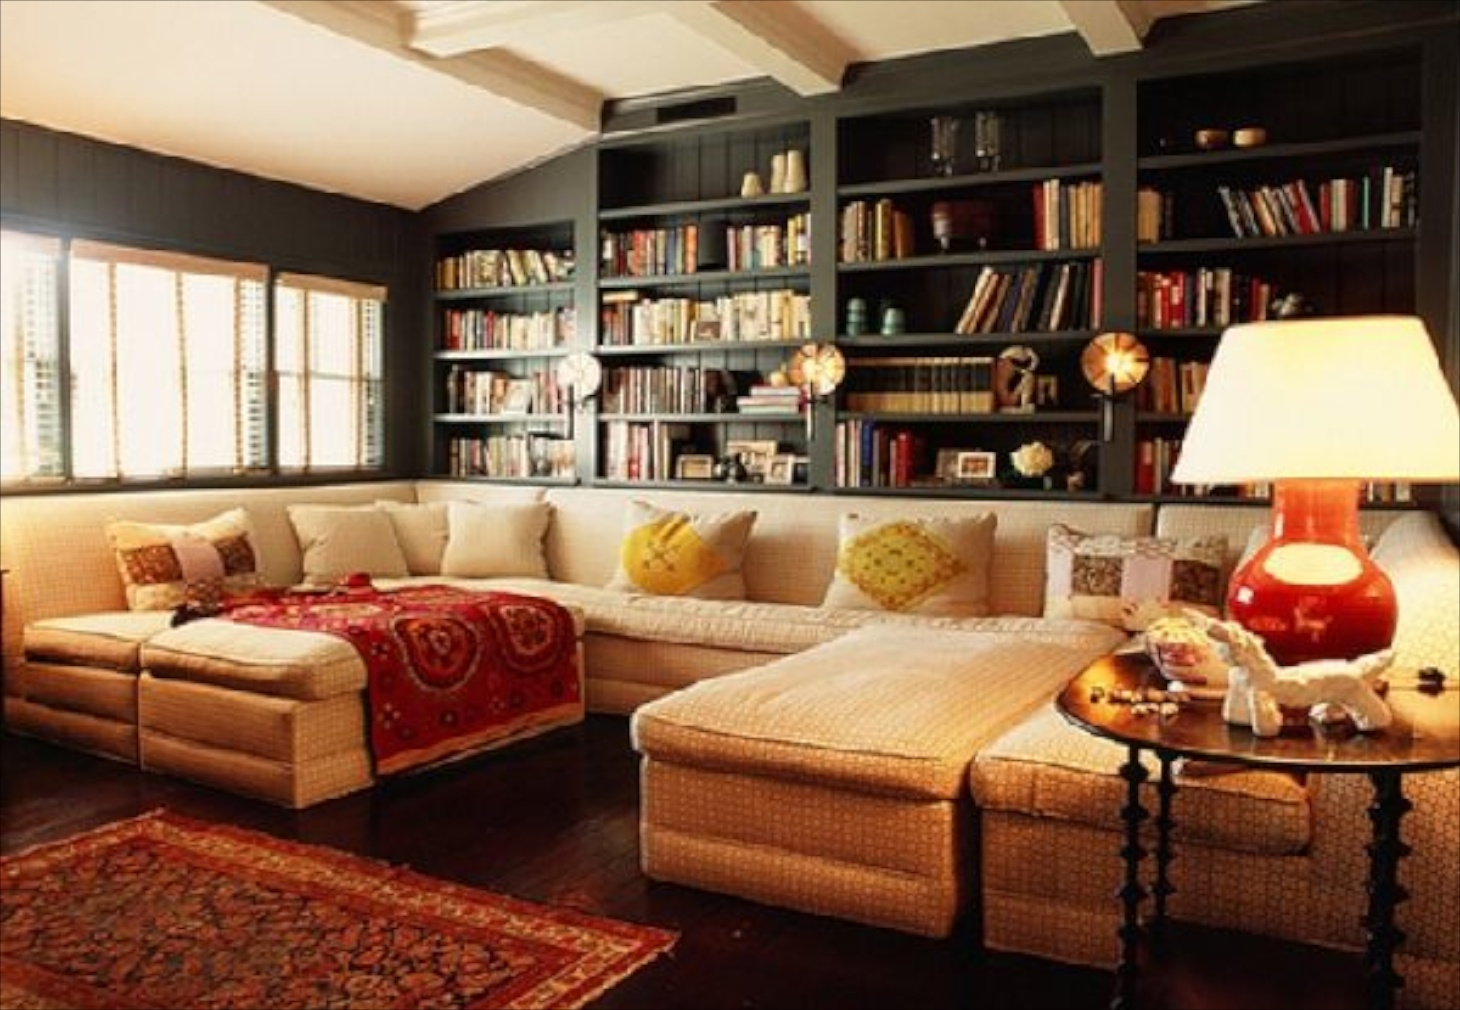 23 sofas and bookcase ideas in cozy living room design for Cozy living room designs